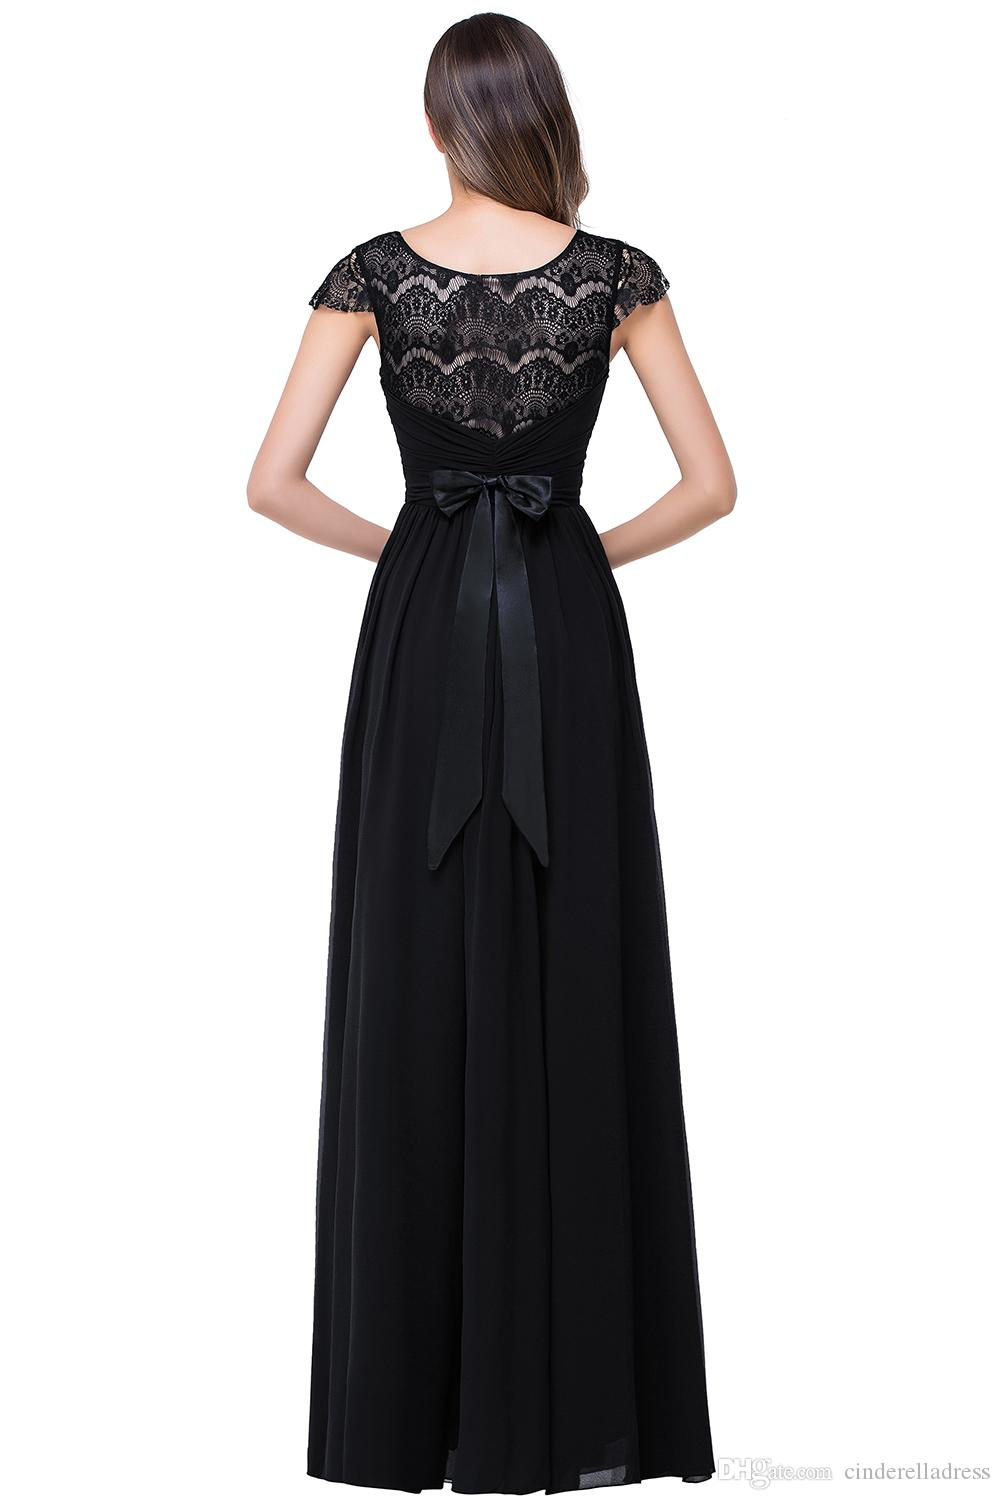 Cheap 2017 navy blue bateau sheer lace long cheap bridesmaid 2017 navy blue bateau sheer lace long cheap bridesmaid dresses cap sleeves floor length evening dress ombrellifo Image collections